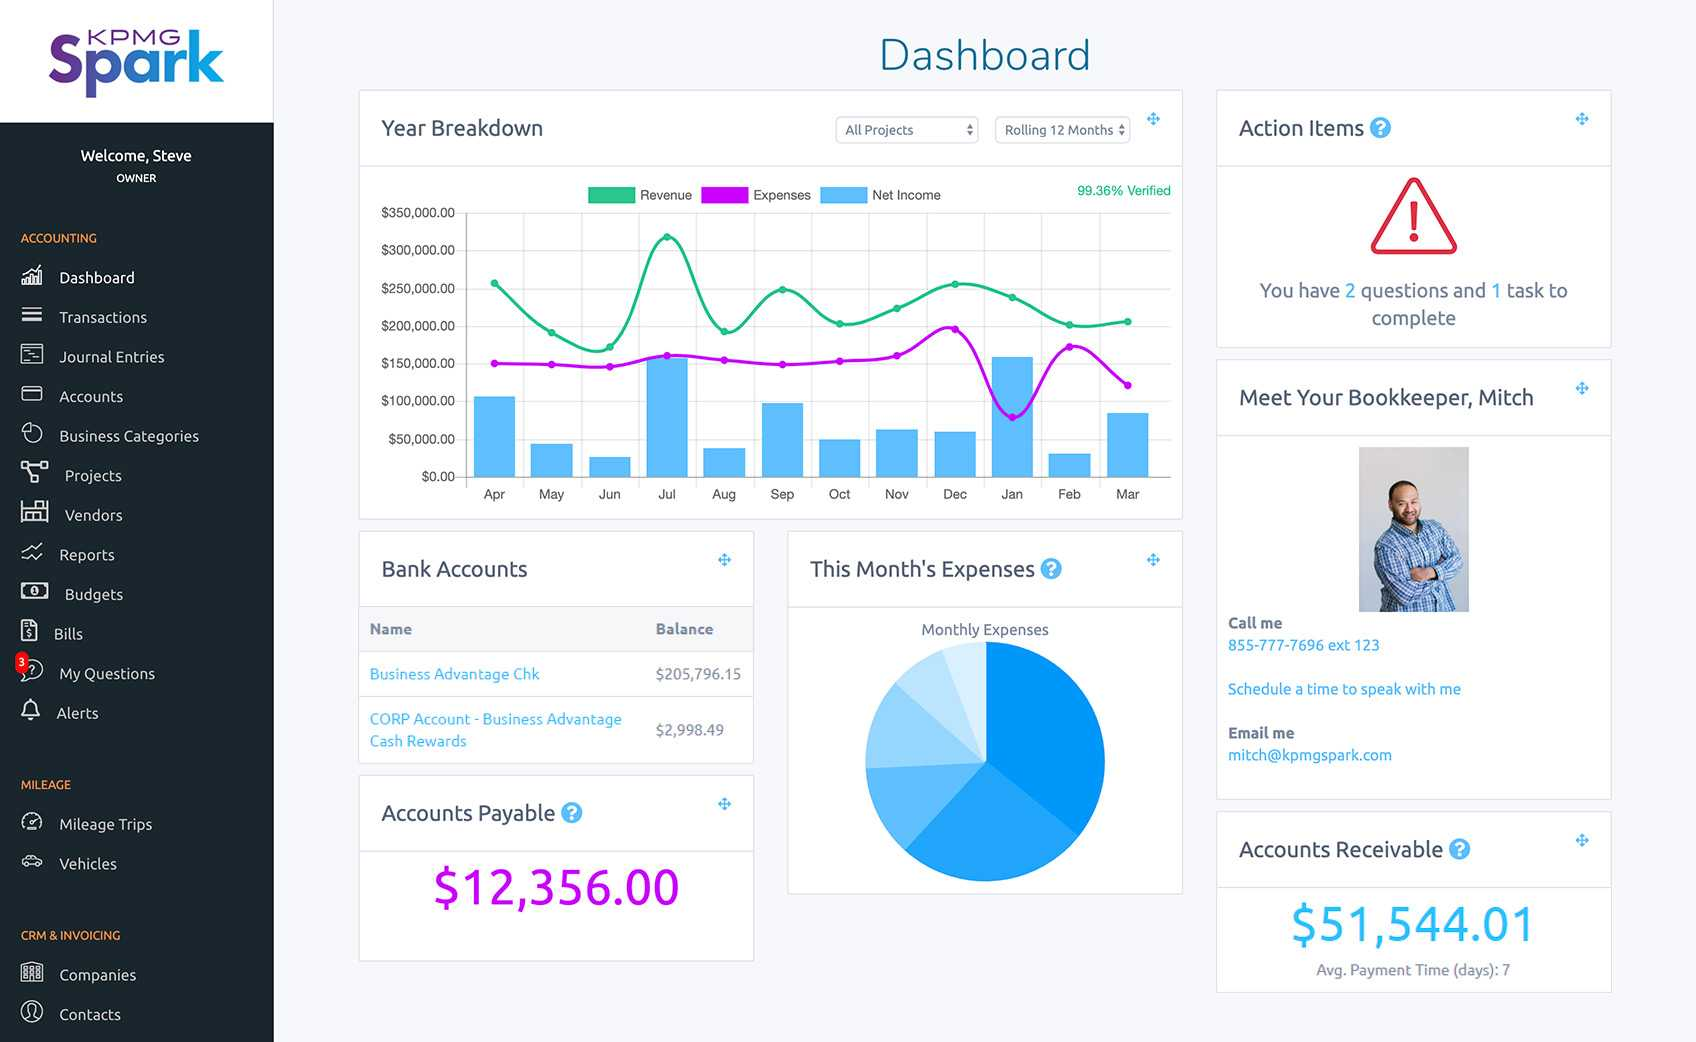 Accounting dashboard in KPMG Spark